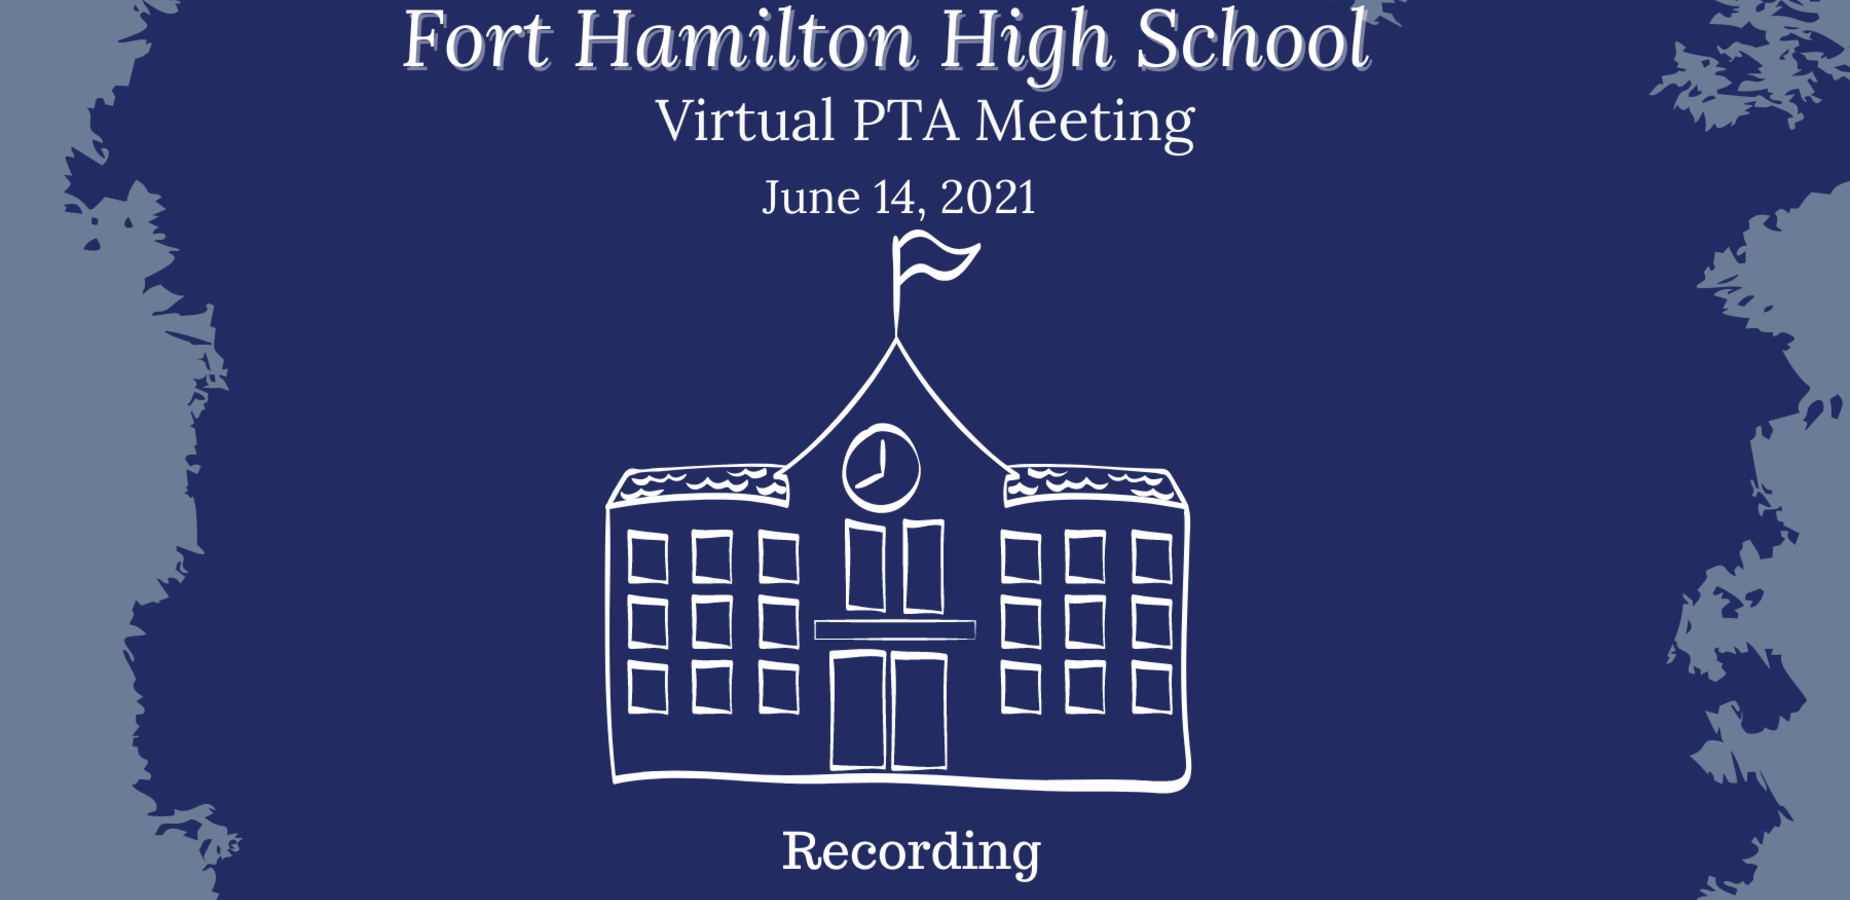 Fort Hamilton High School PTA Virtual Meeting. June 14, 2021. Recorded. On a blue background with drawing of a school building